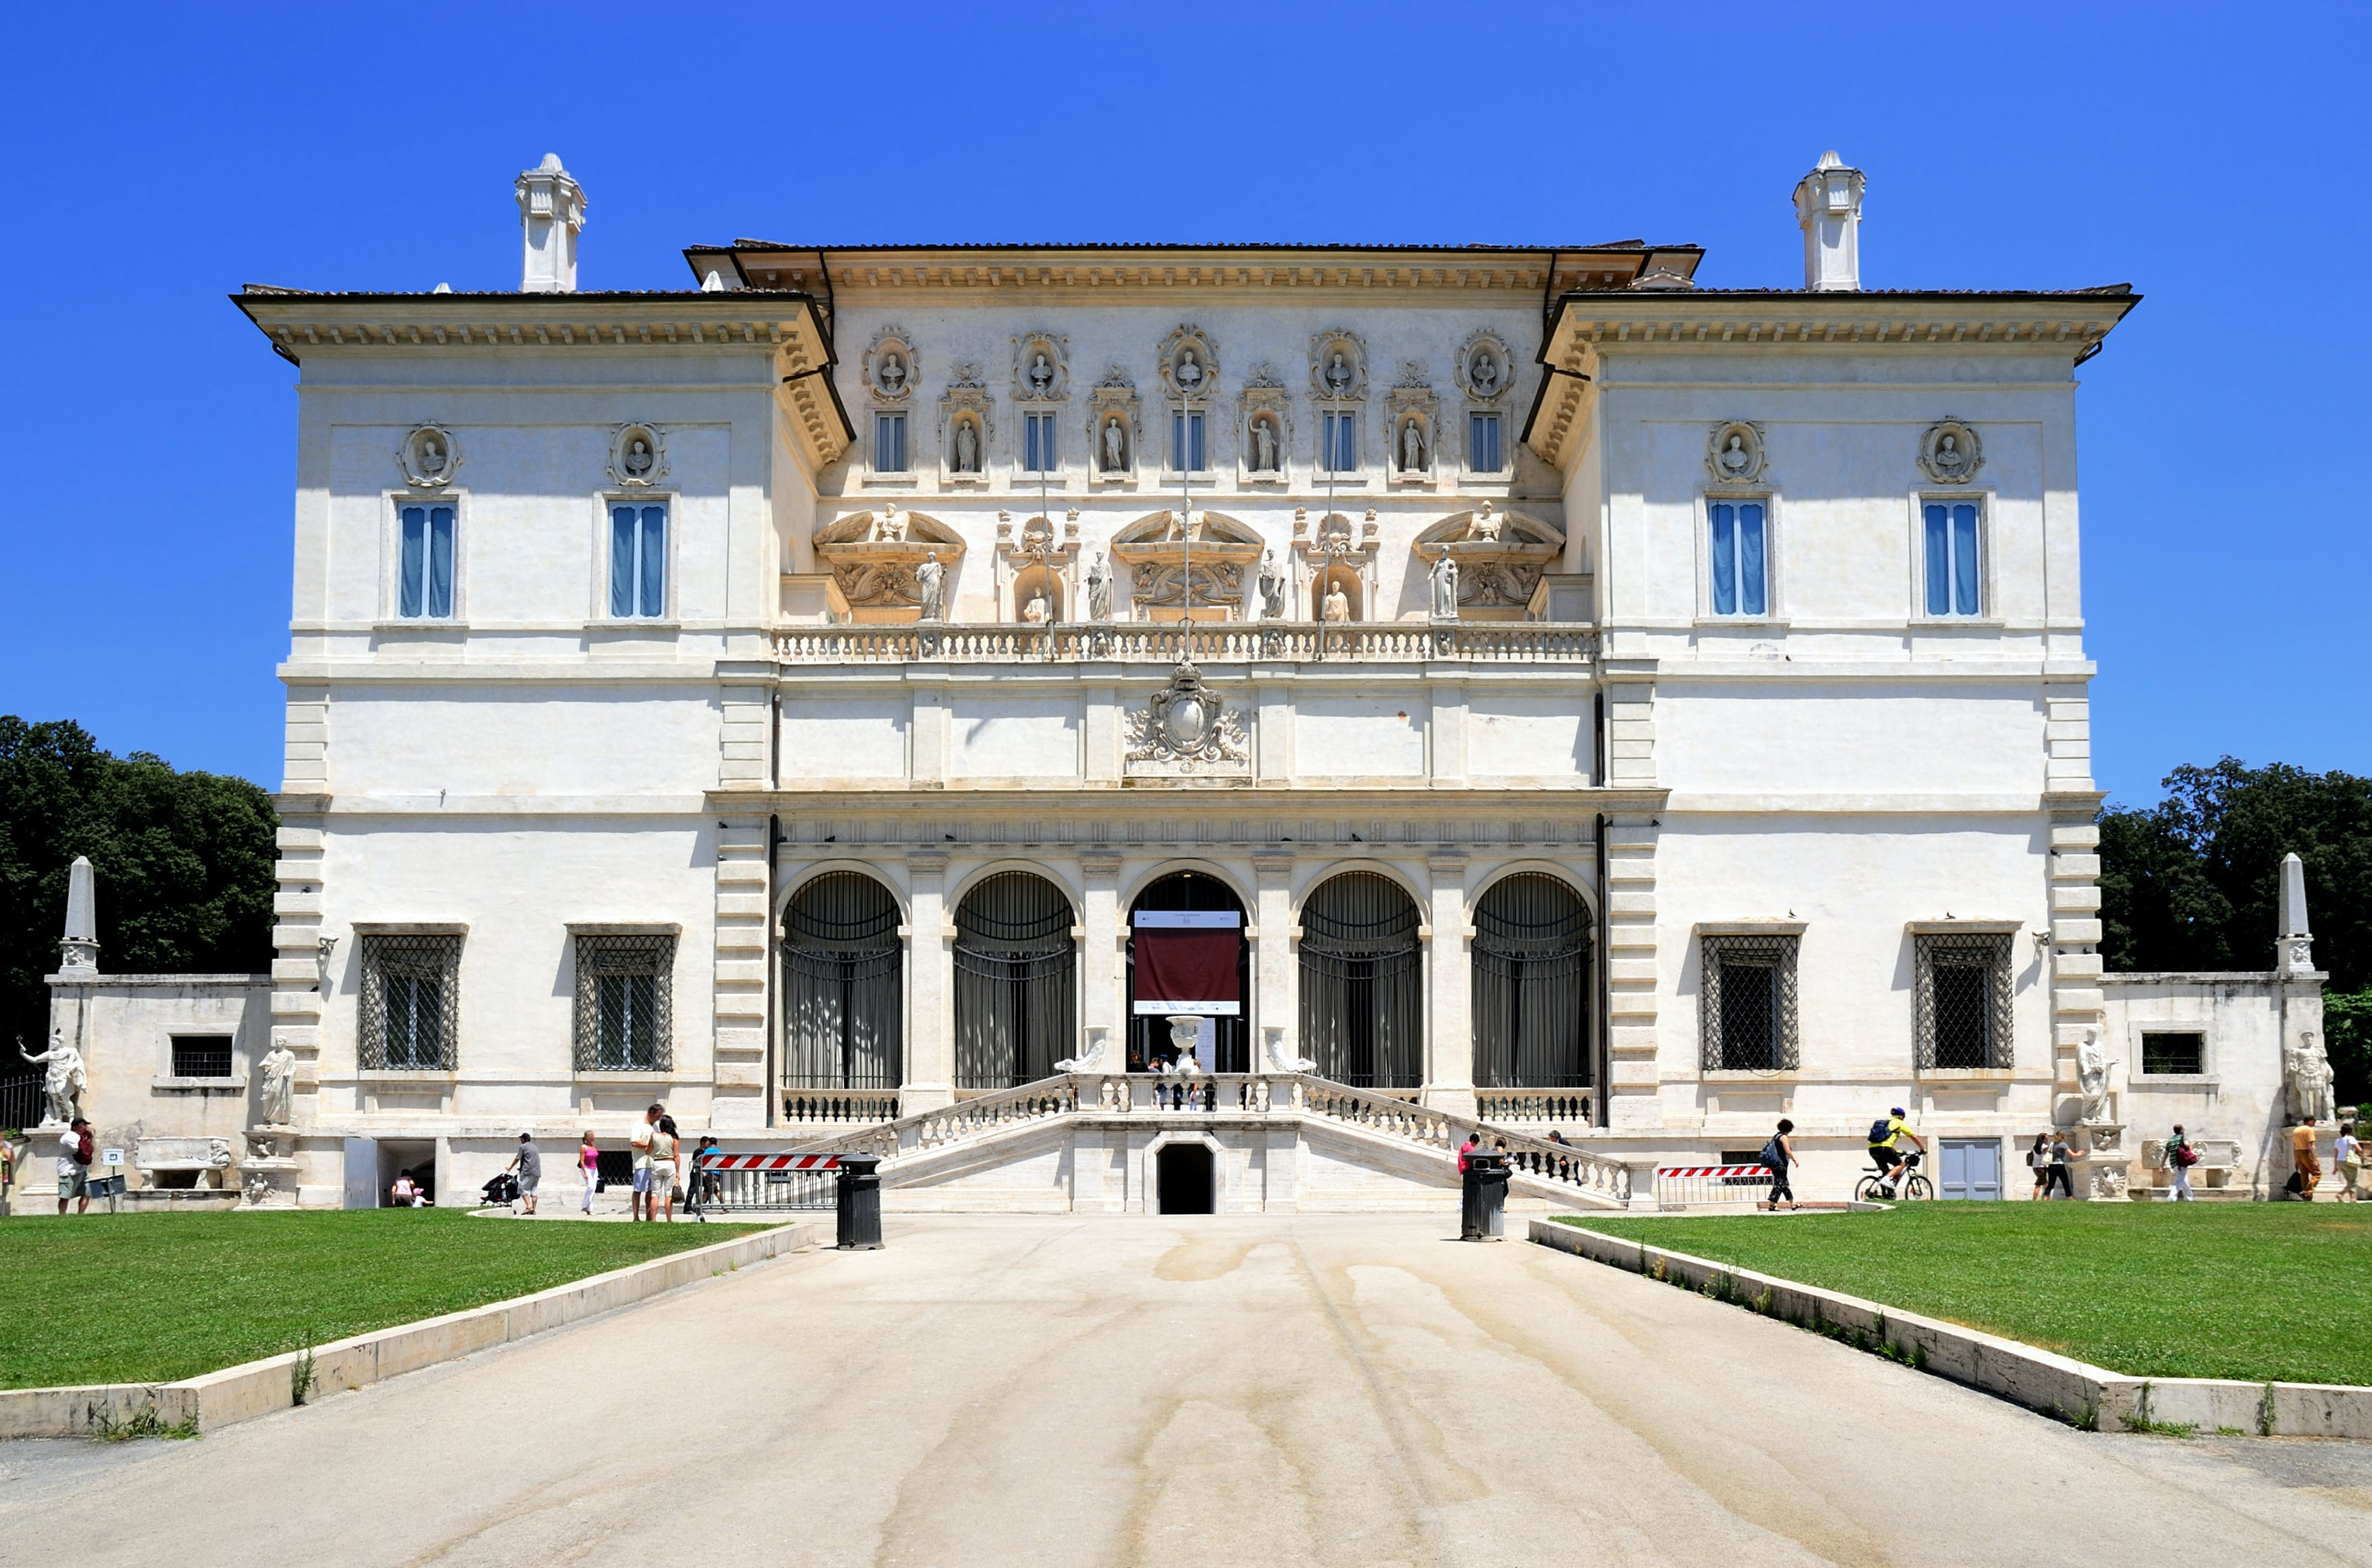 Skip-the-line tickets for the Borghese Gallery